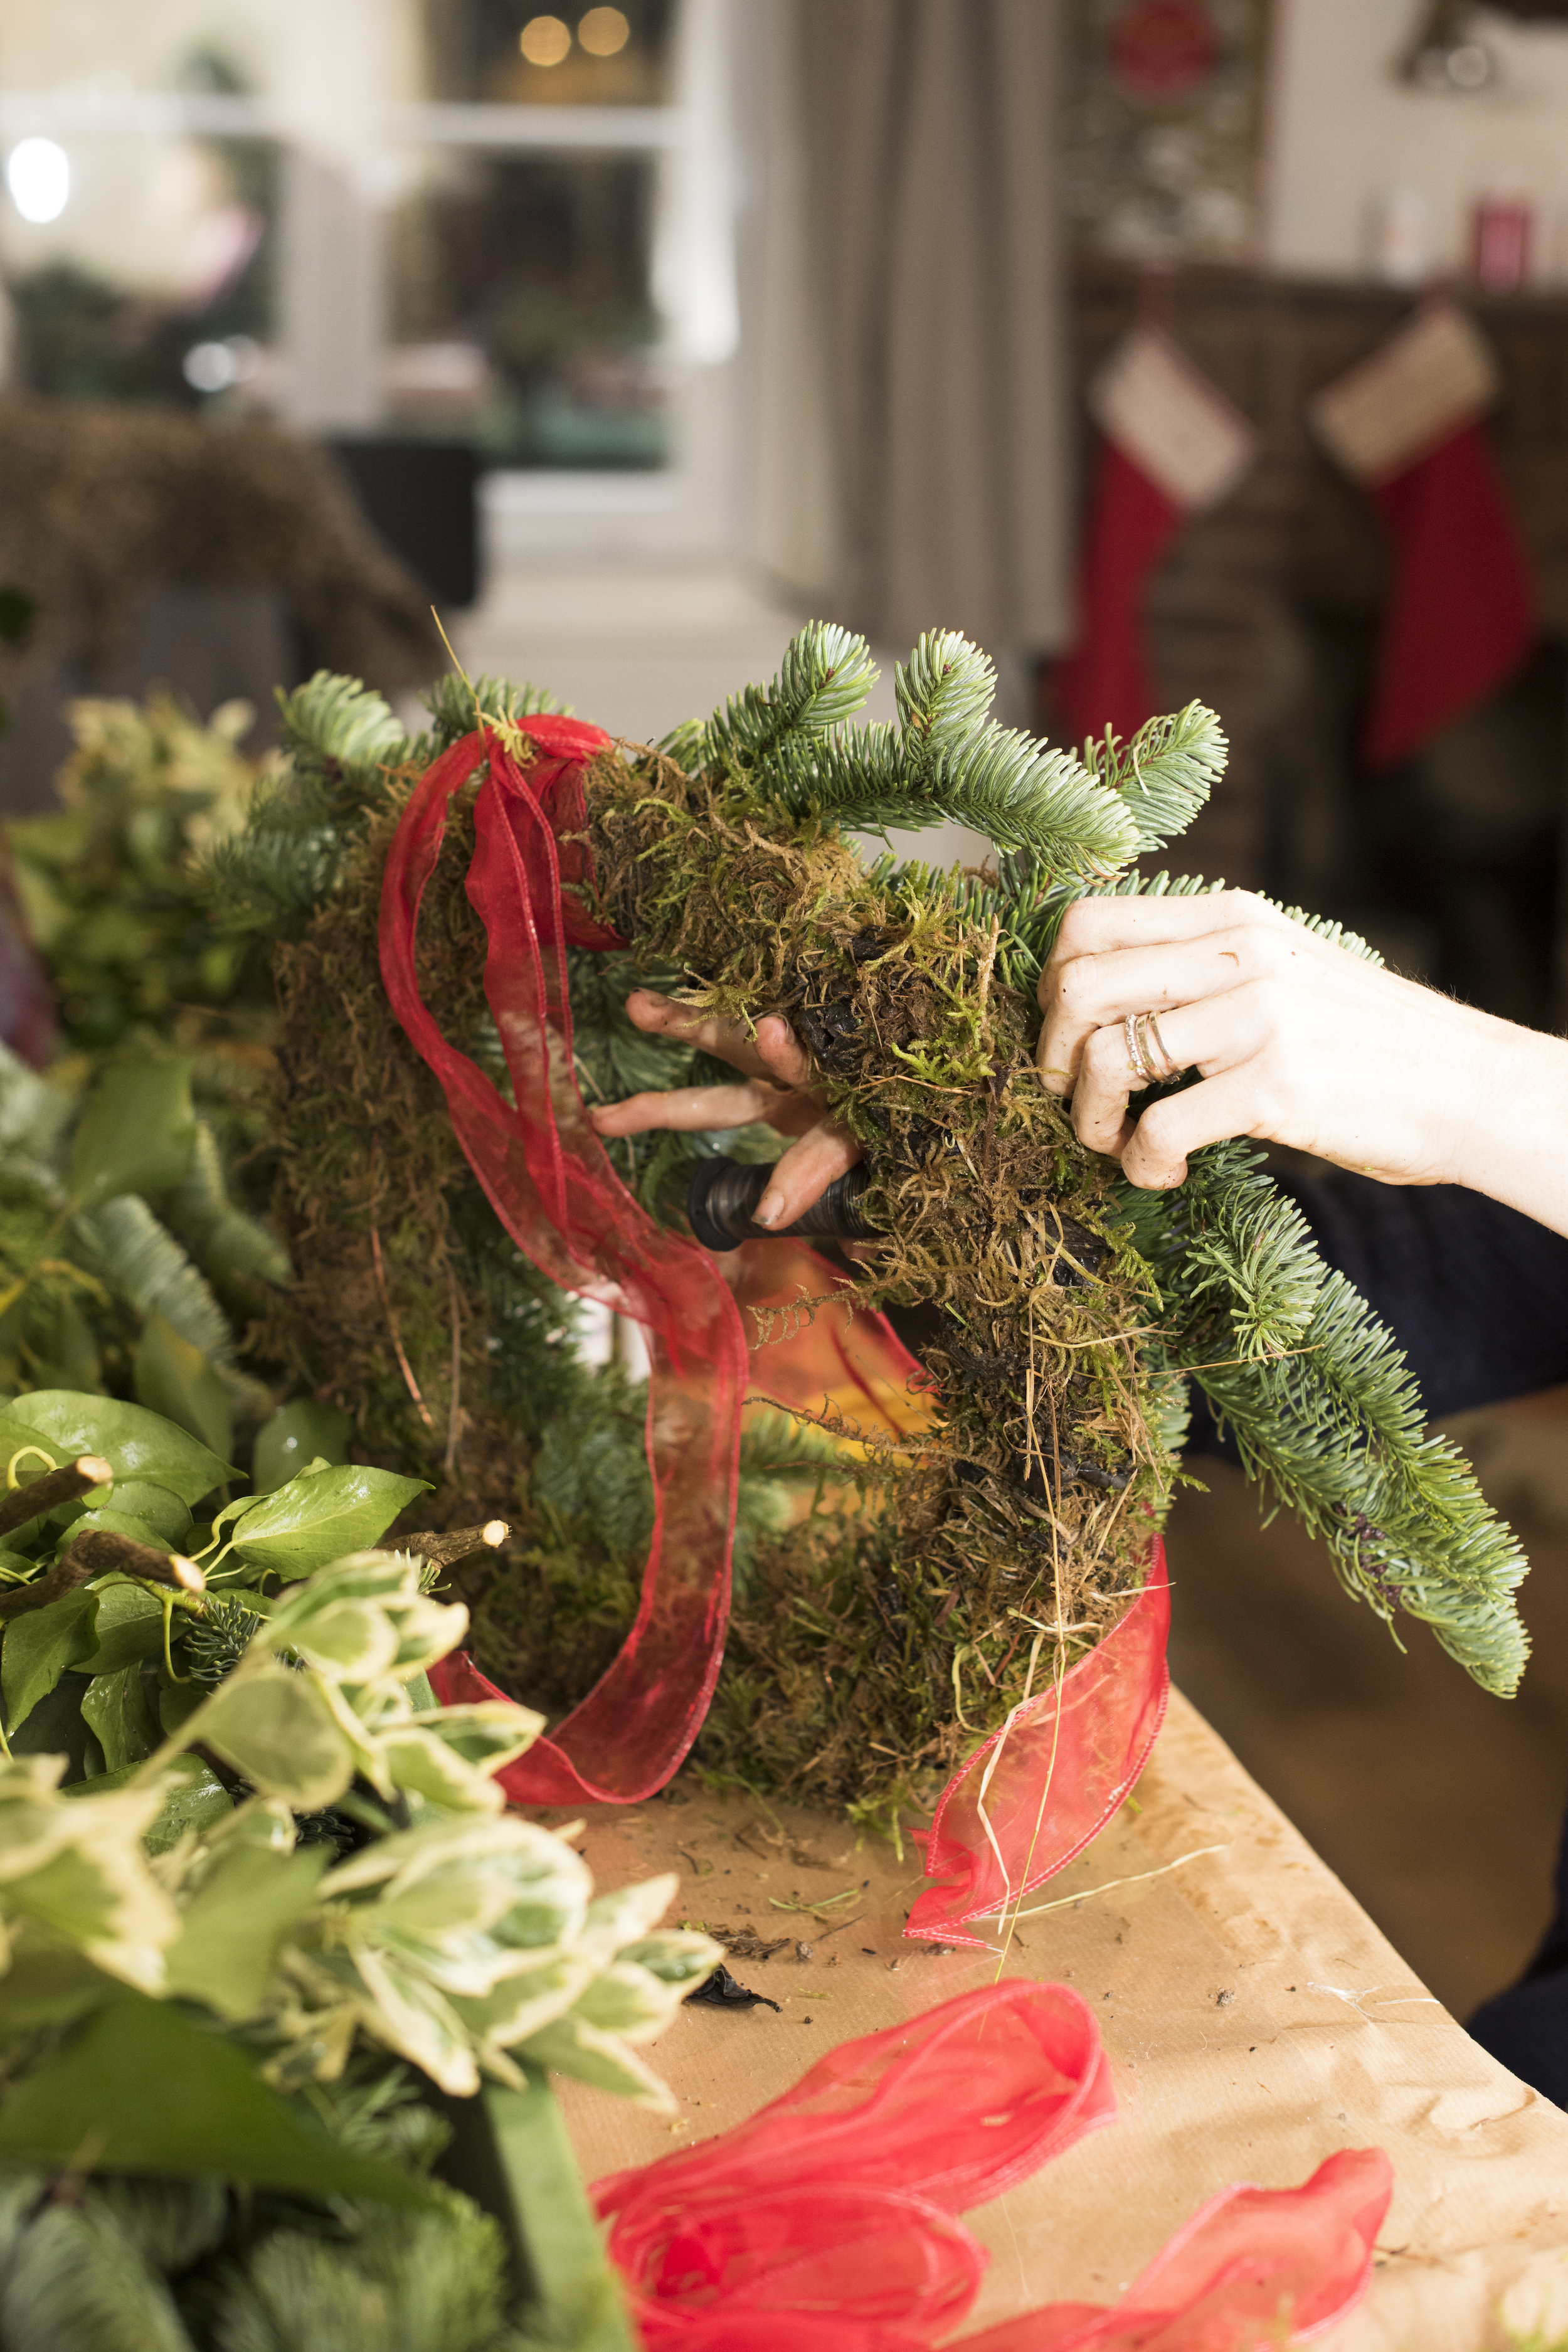 Luxury Christmas Wreath Workshop  via Zoom on Friday December 4th 2020  10:00-12:00